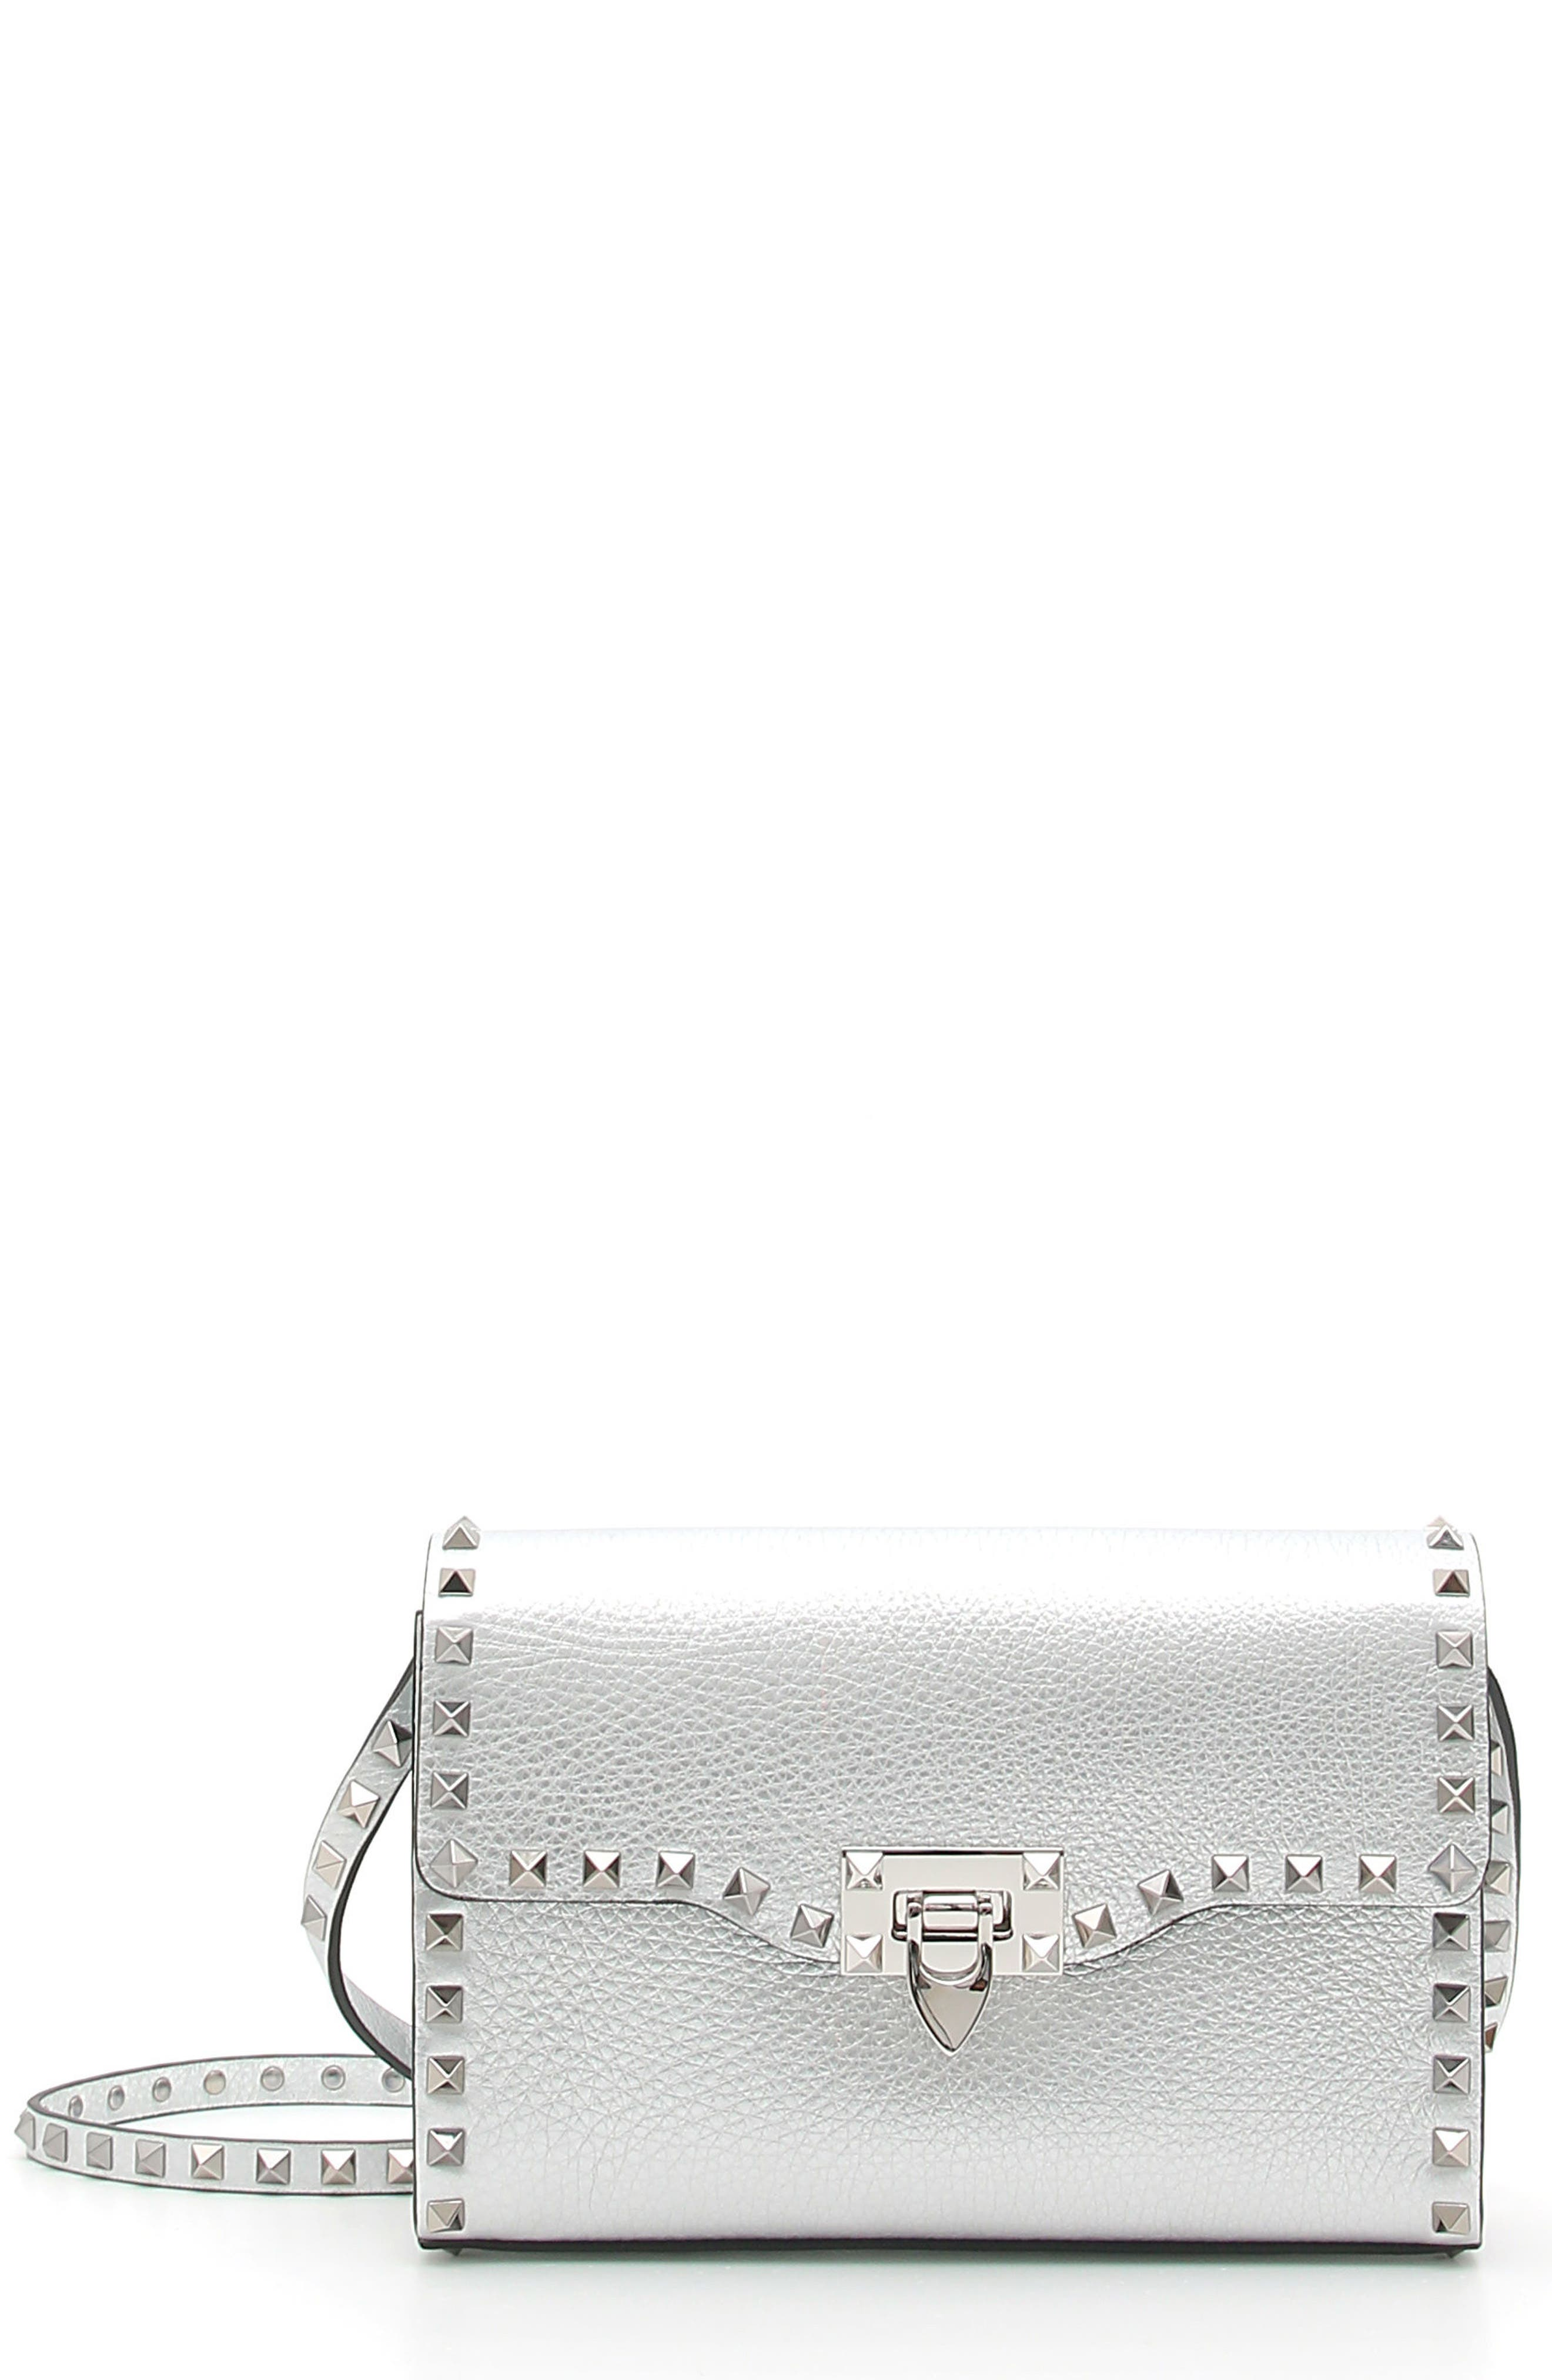 VALENTINO GARAVANI Rockstud Medium Metallic Leather Crossbody Bag